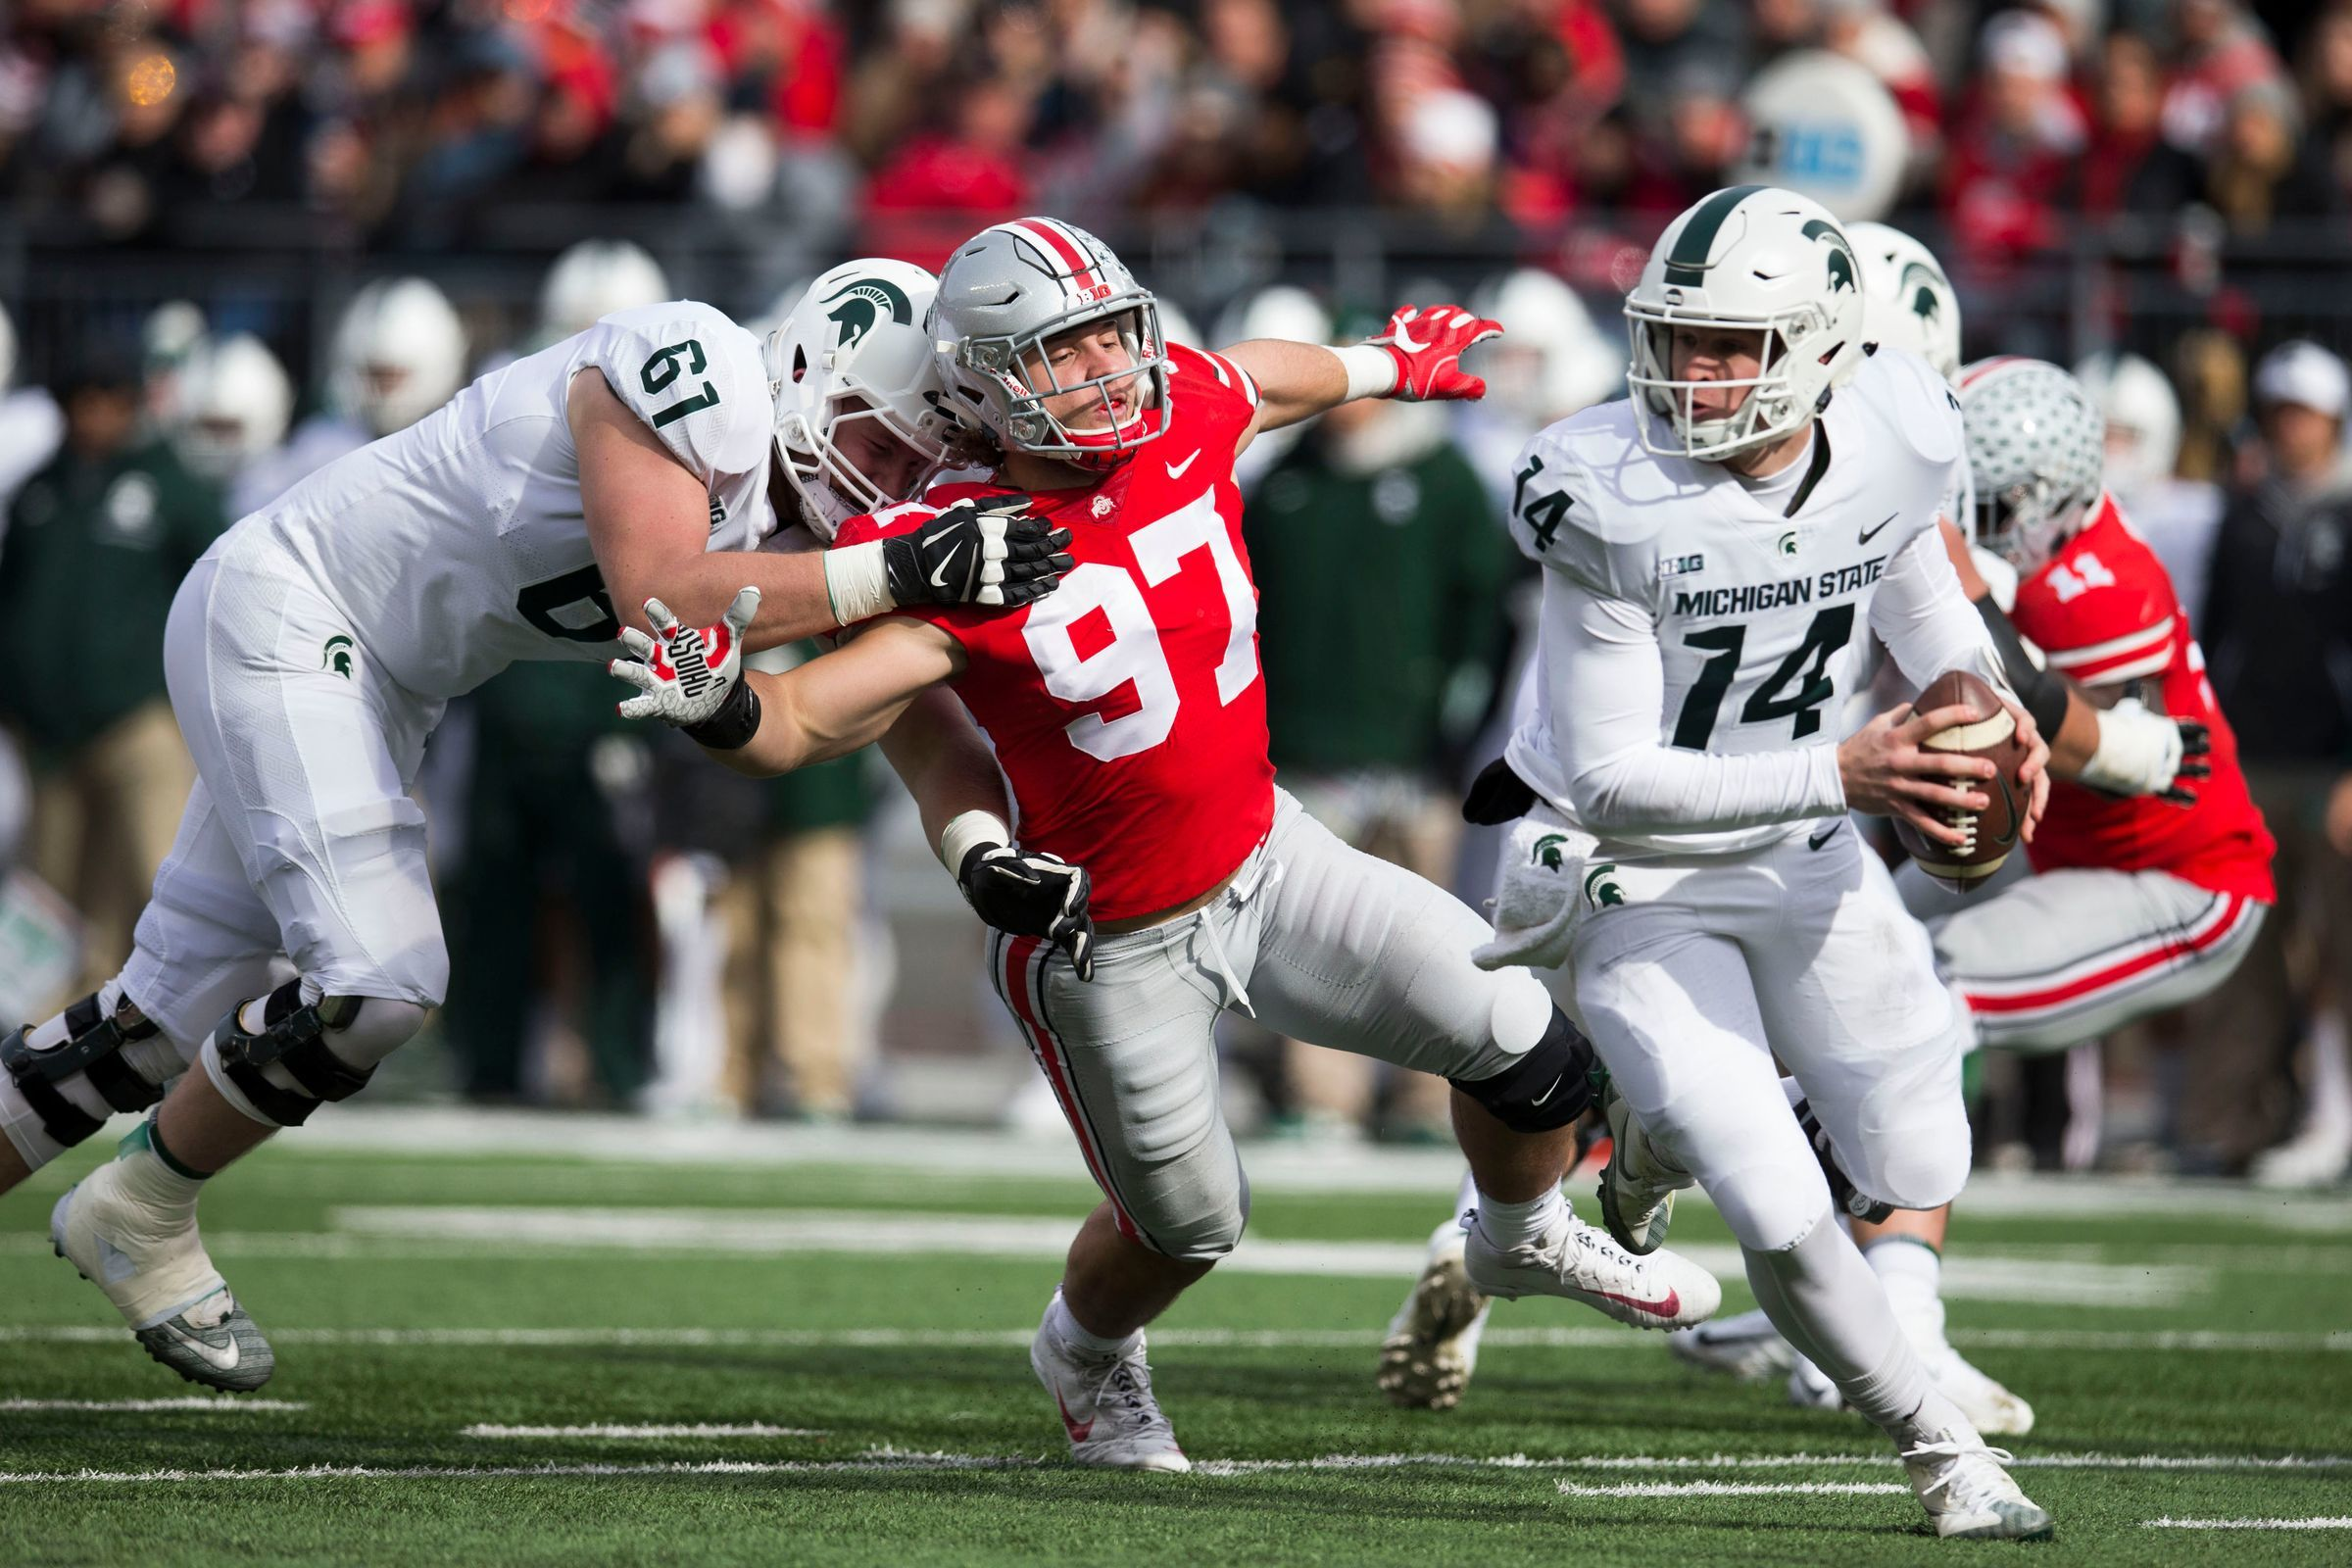 Brian Lewerke and Messiah deWeaver were sacked a combined six times in 2017's loss to the Buckeyes in Columbus.